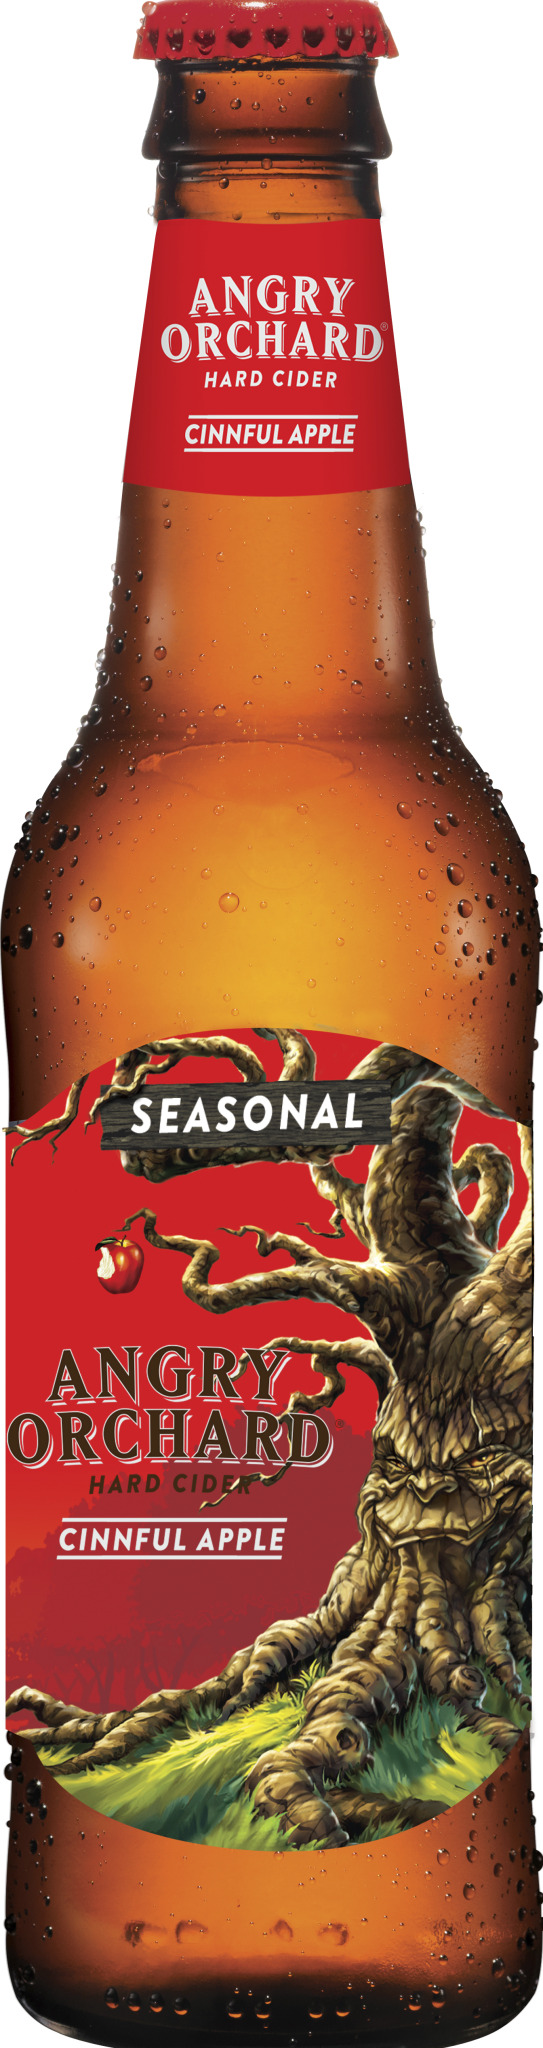 Angry Orchard Cinnful Apple Hard Cider